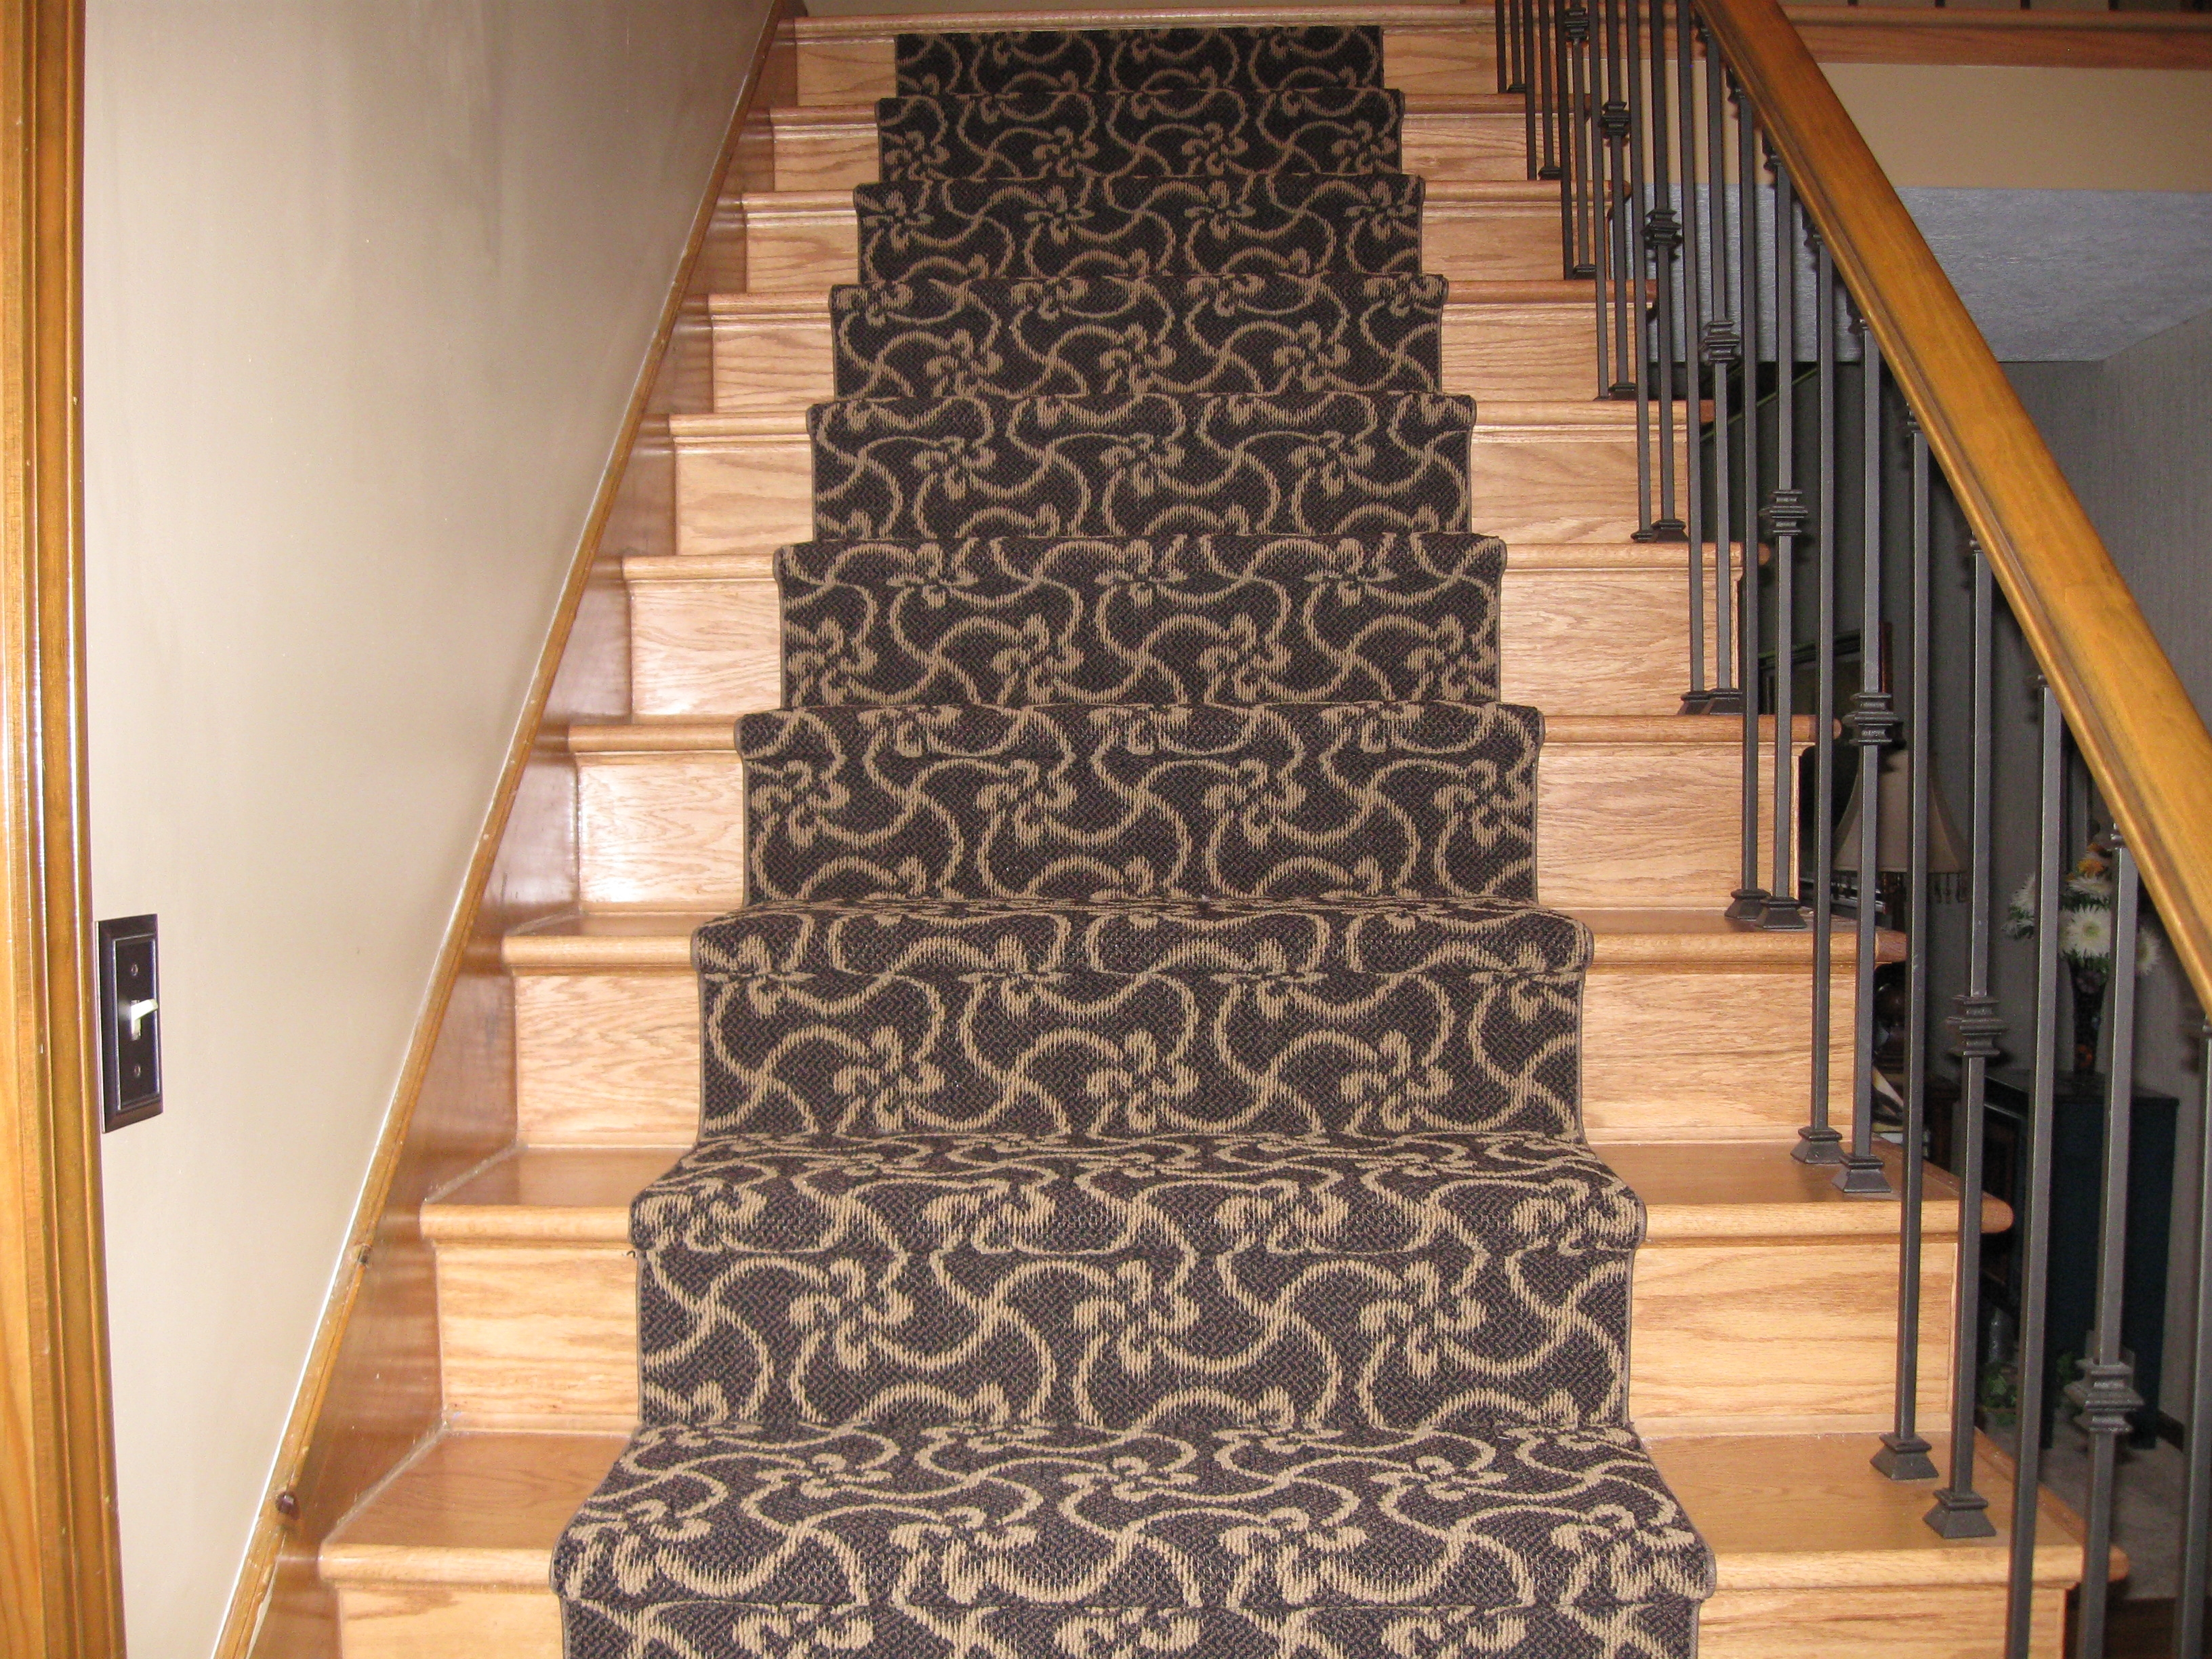 Flooring Stair Treads Carpet Carpet Tread Carpet Treads For Pertaining To Stair Treads Landing Rug (#5 of 20)